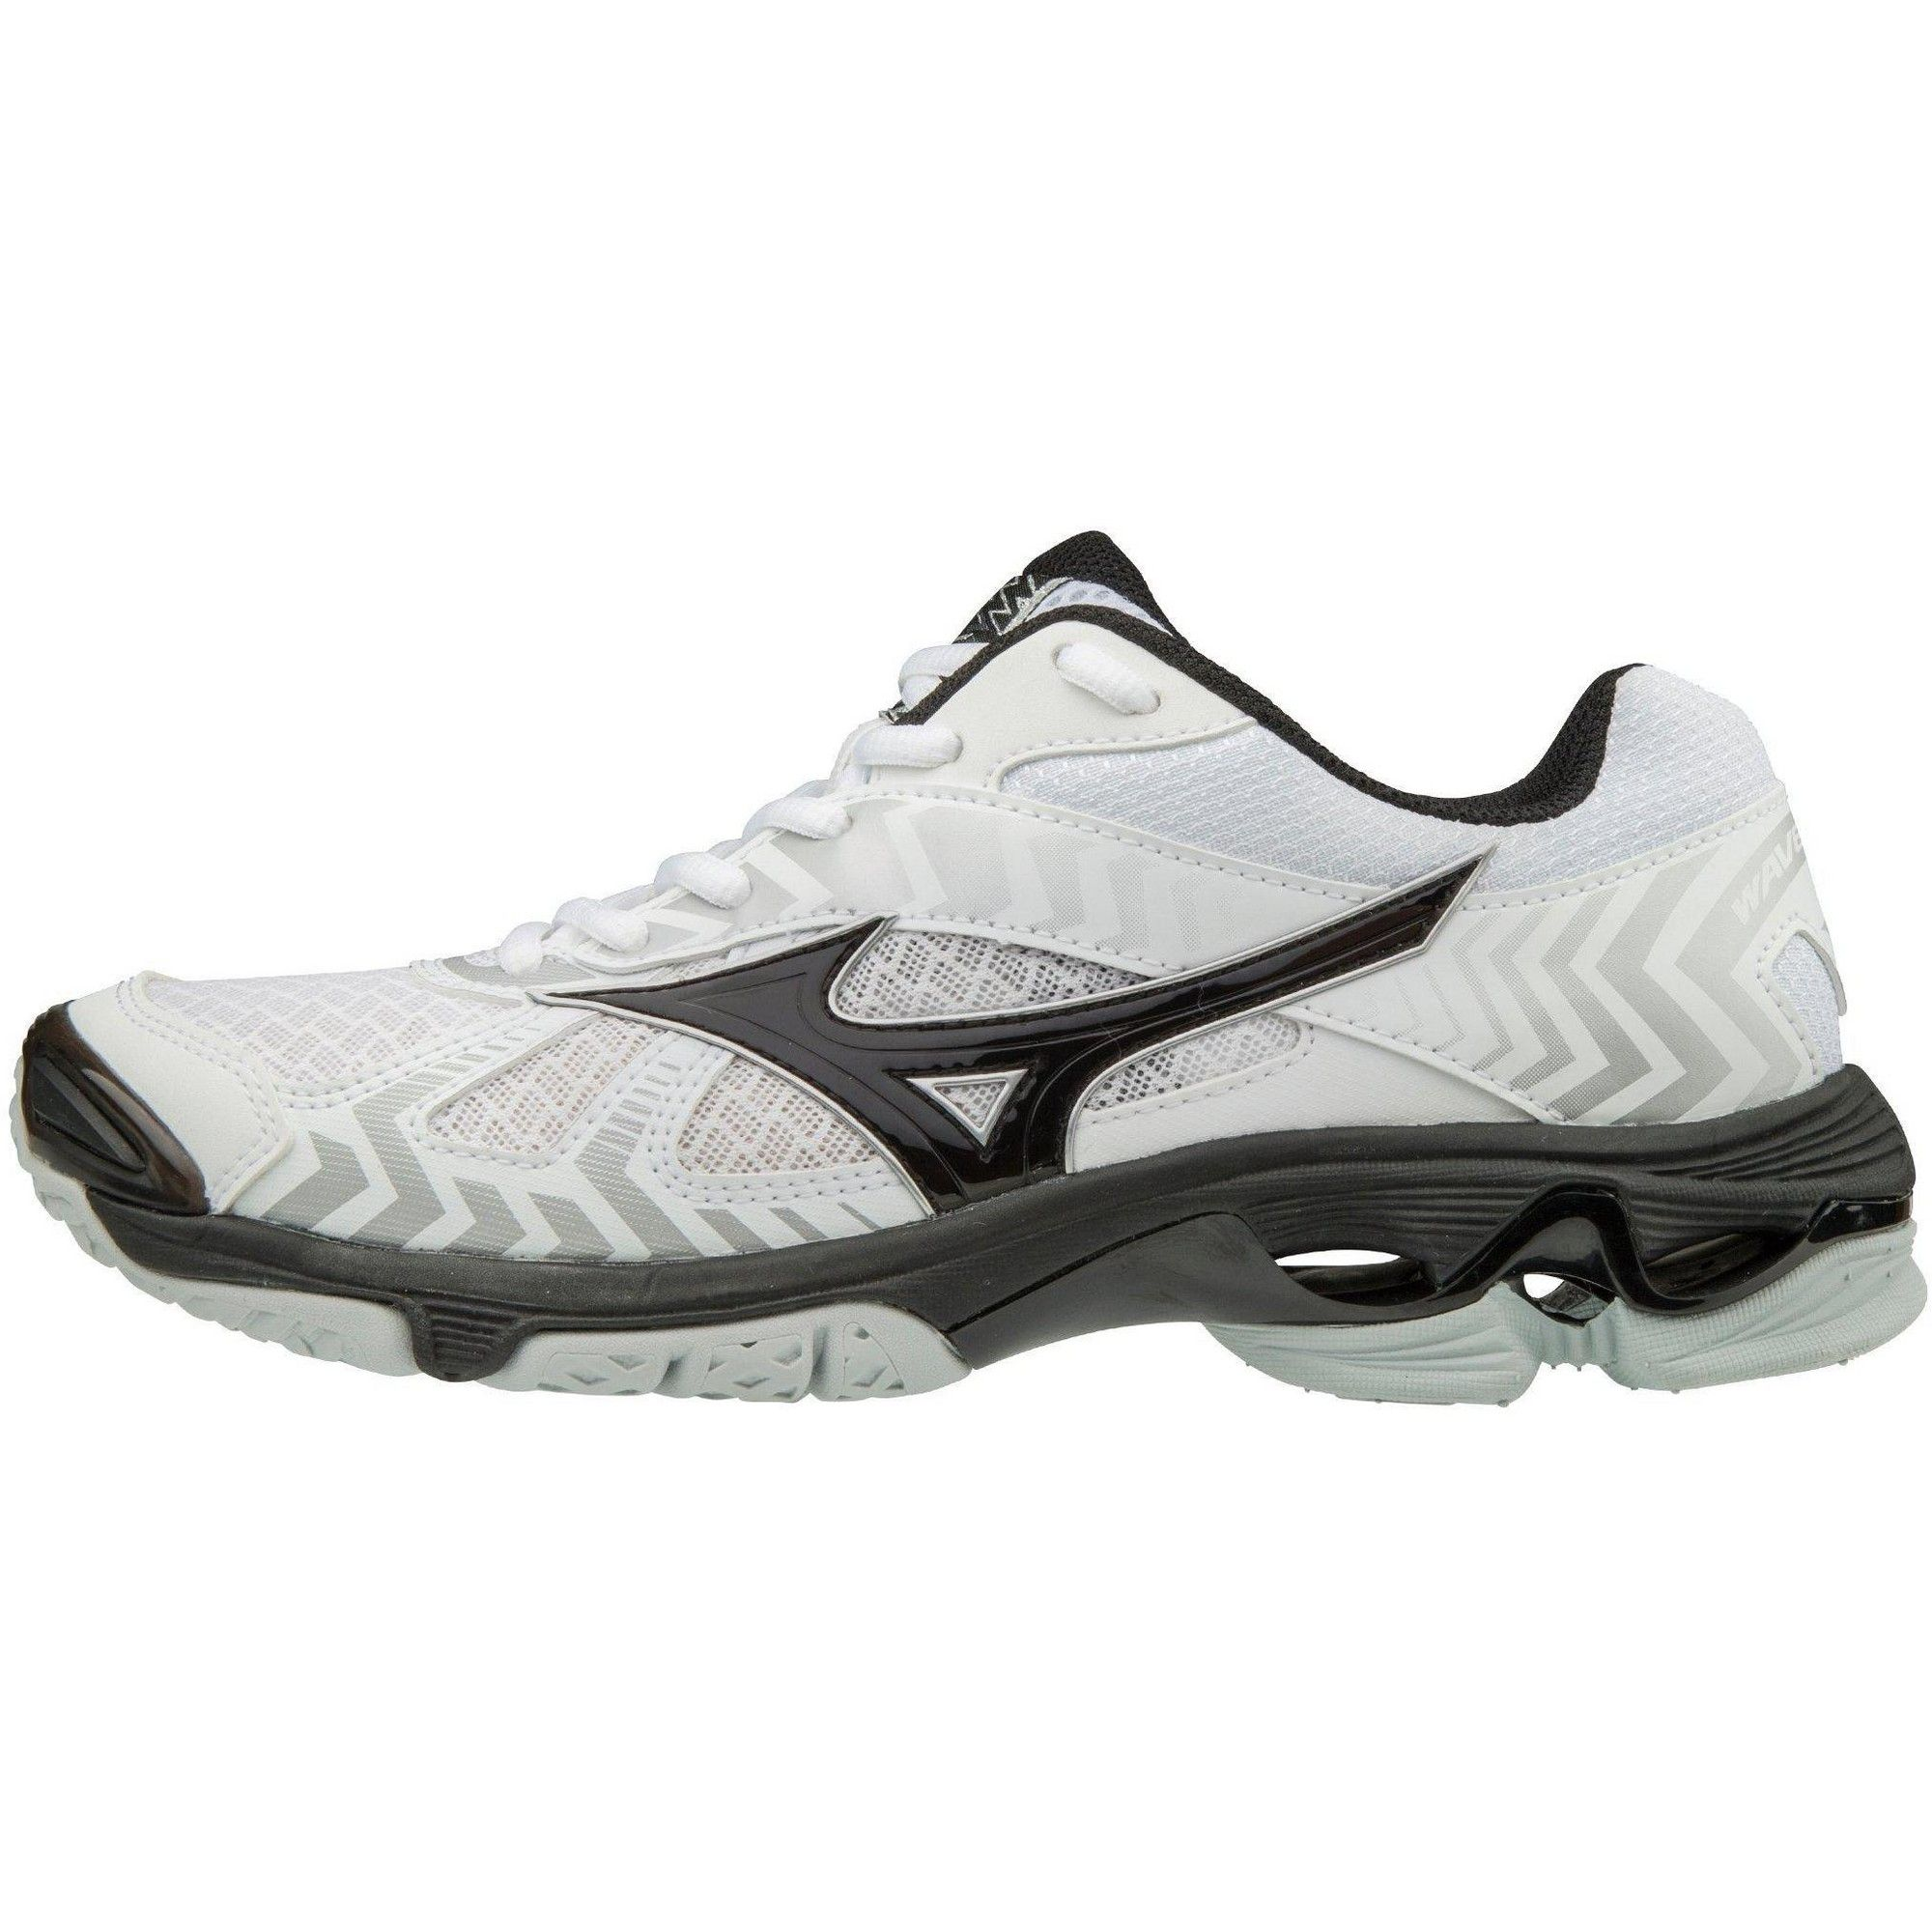 Mizuno Women S Wave Bolt 7 Volleyball Shoes Womens Size 6 5 In Color White Black 0090 Volleyball Shoes Women Volleyball Mens Volleyball Shoes